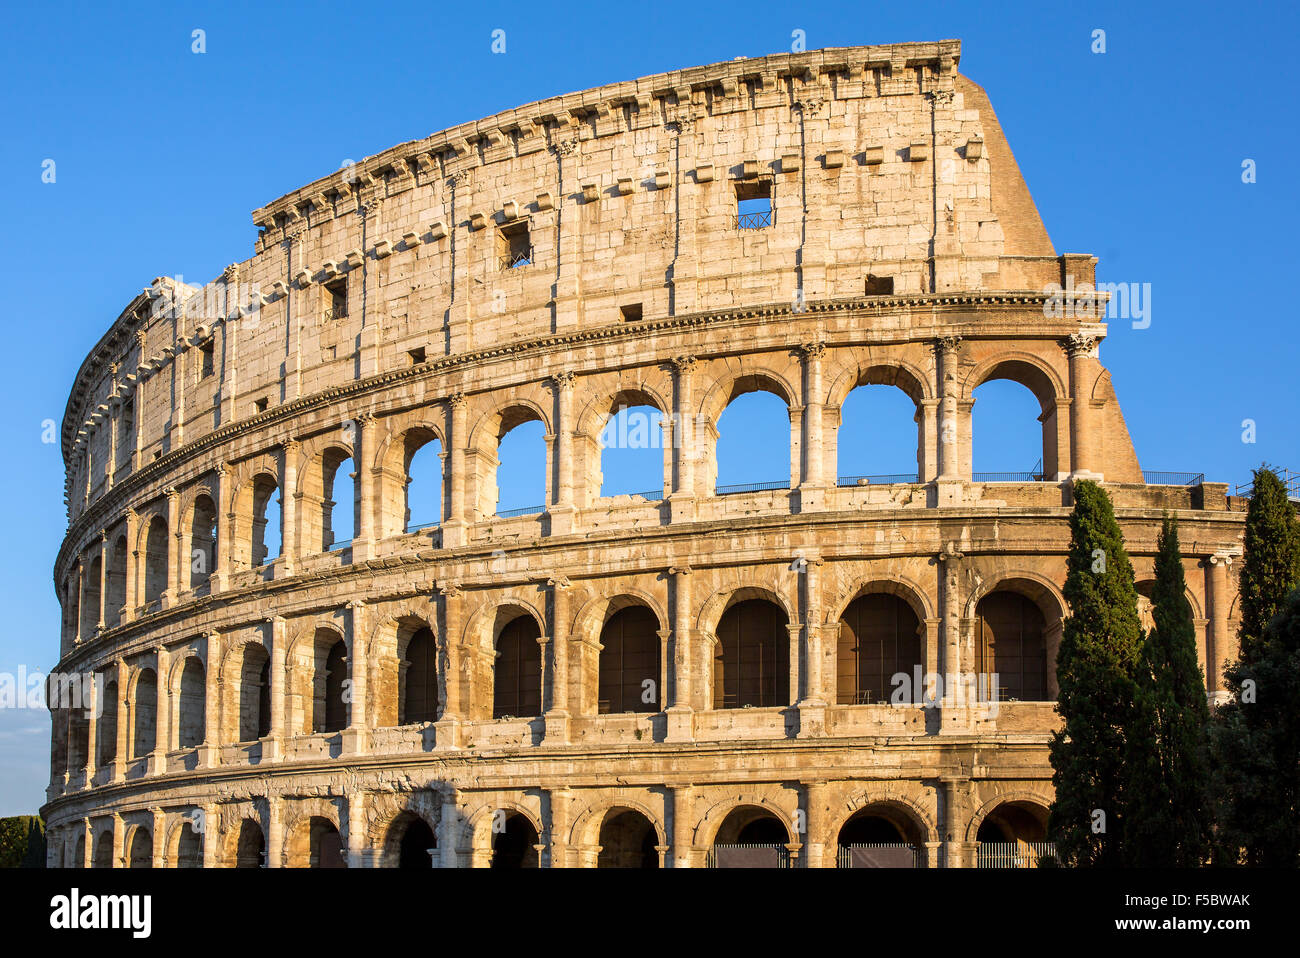 Sunrise Colosseum in Rome, Italy Stock Photo